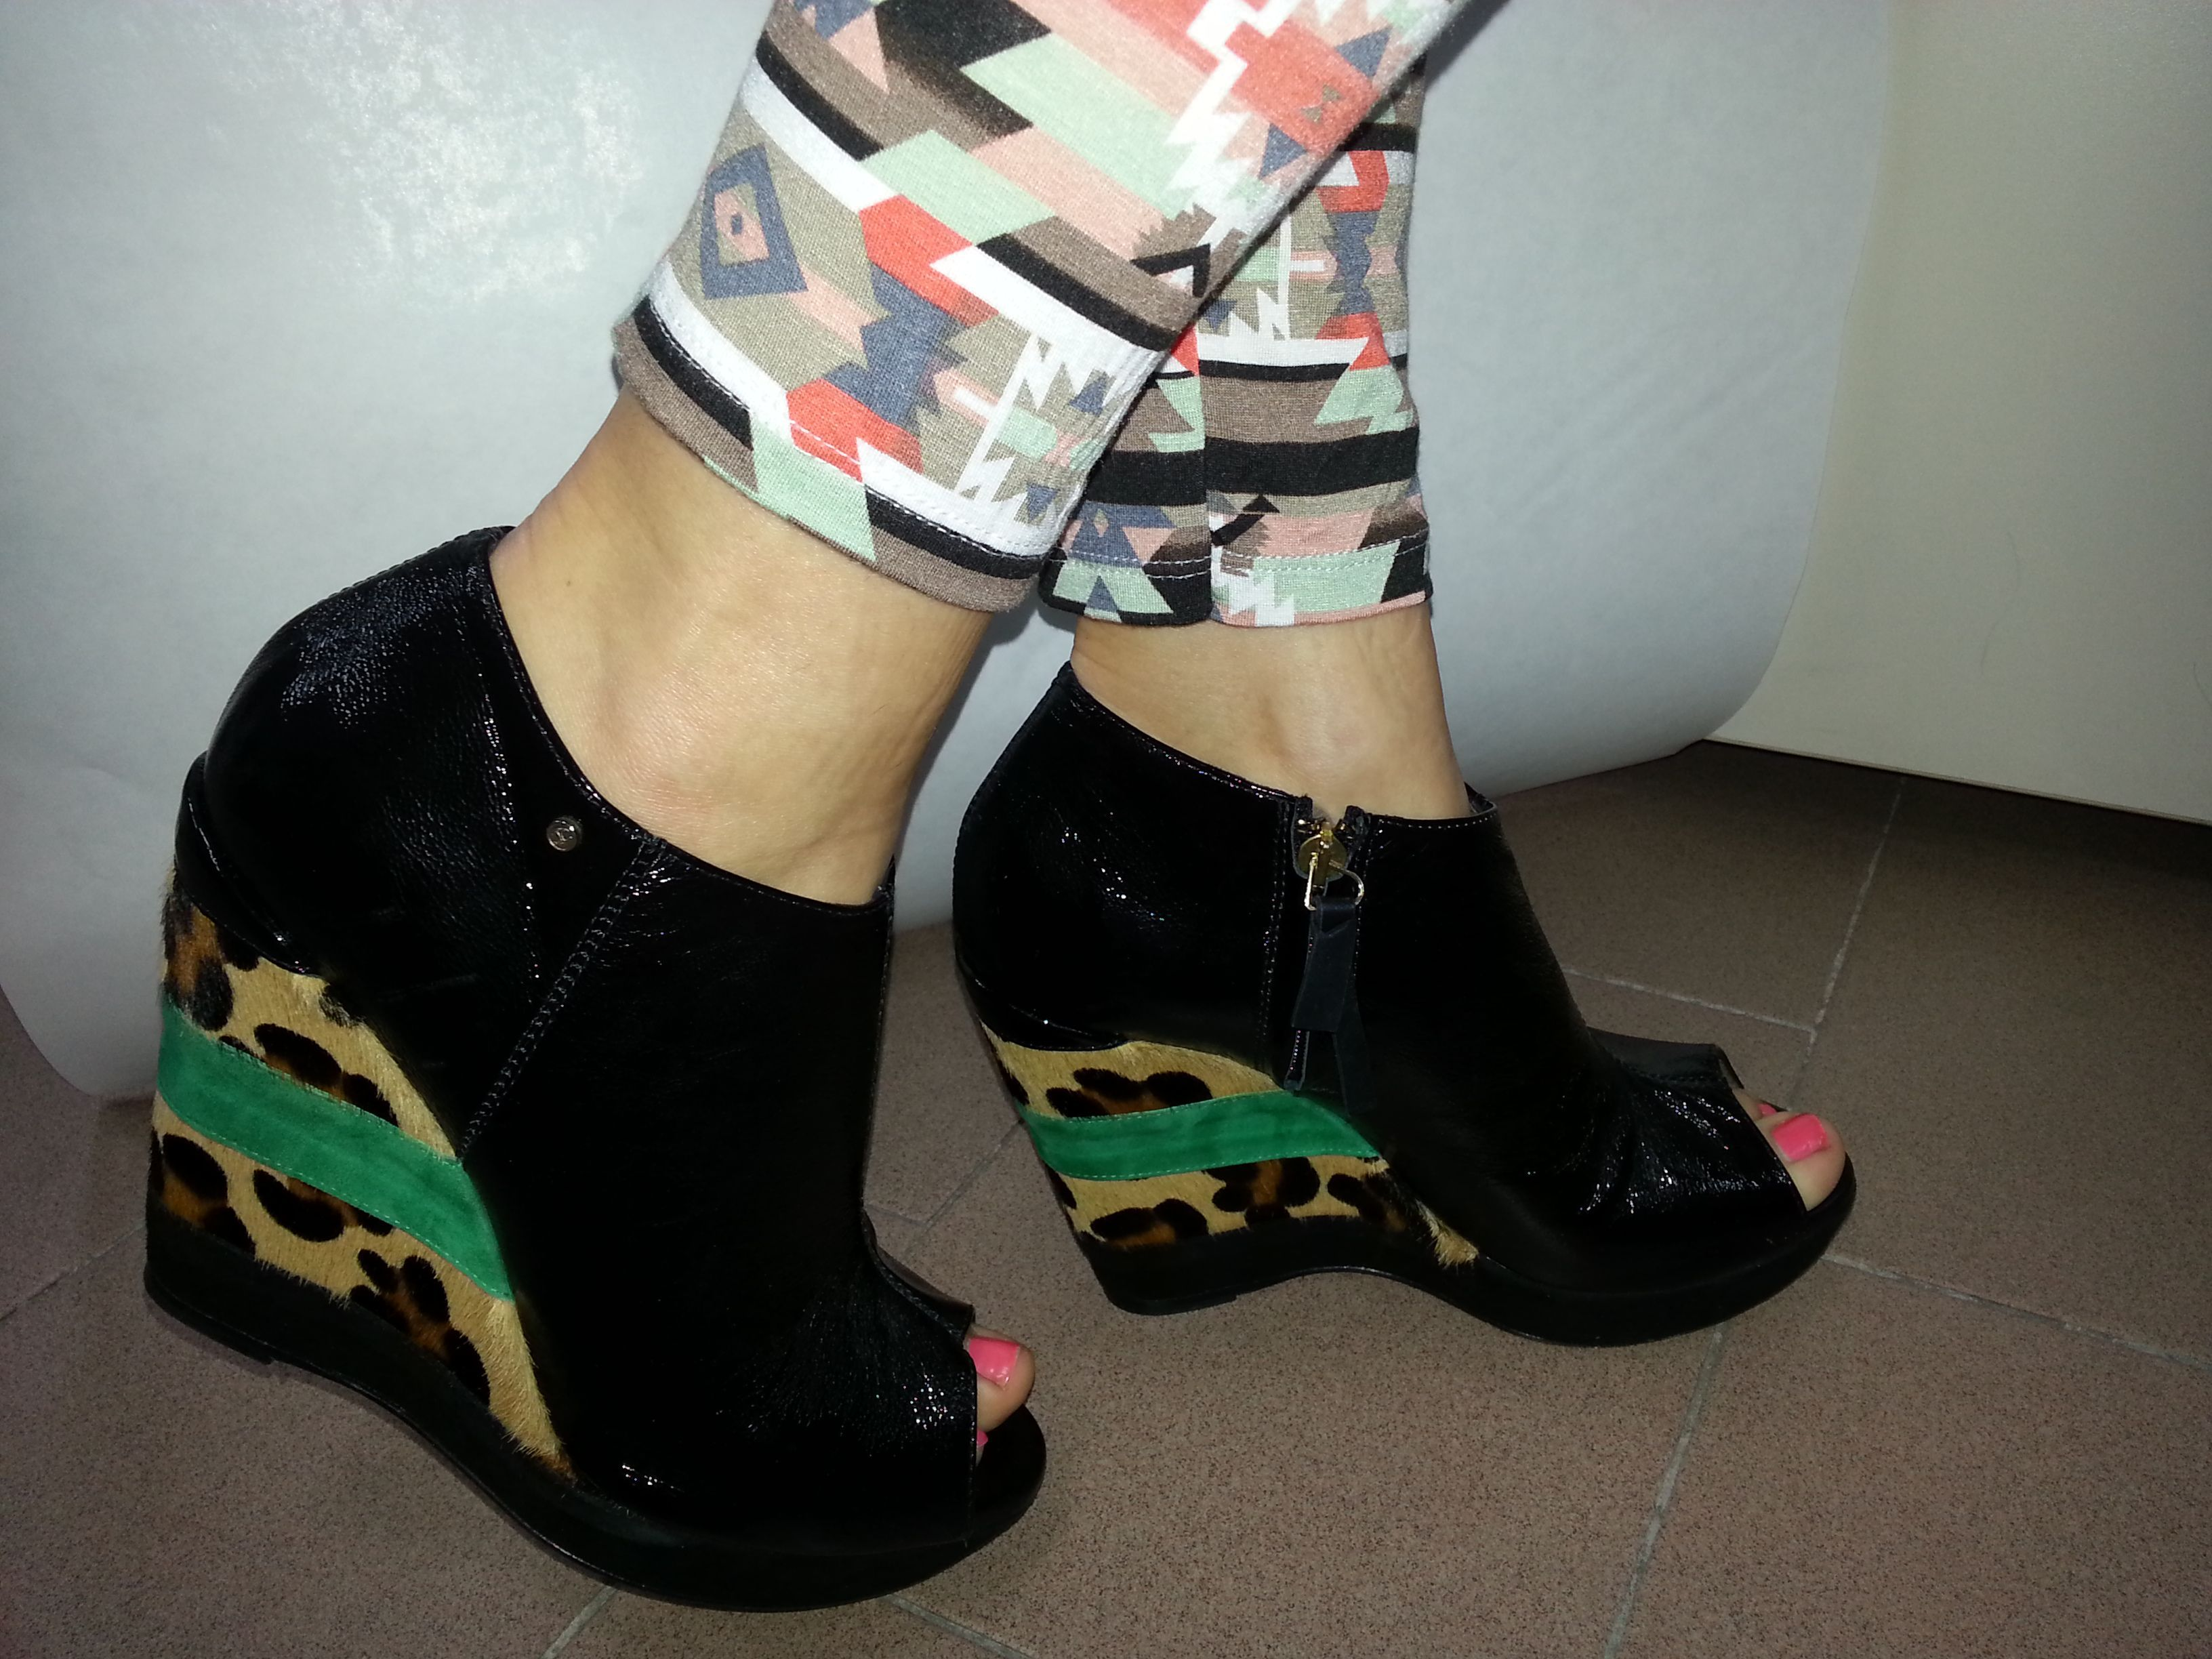 My Just Cavalli shoes